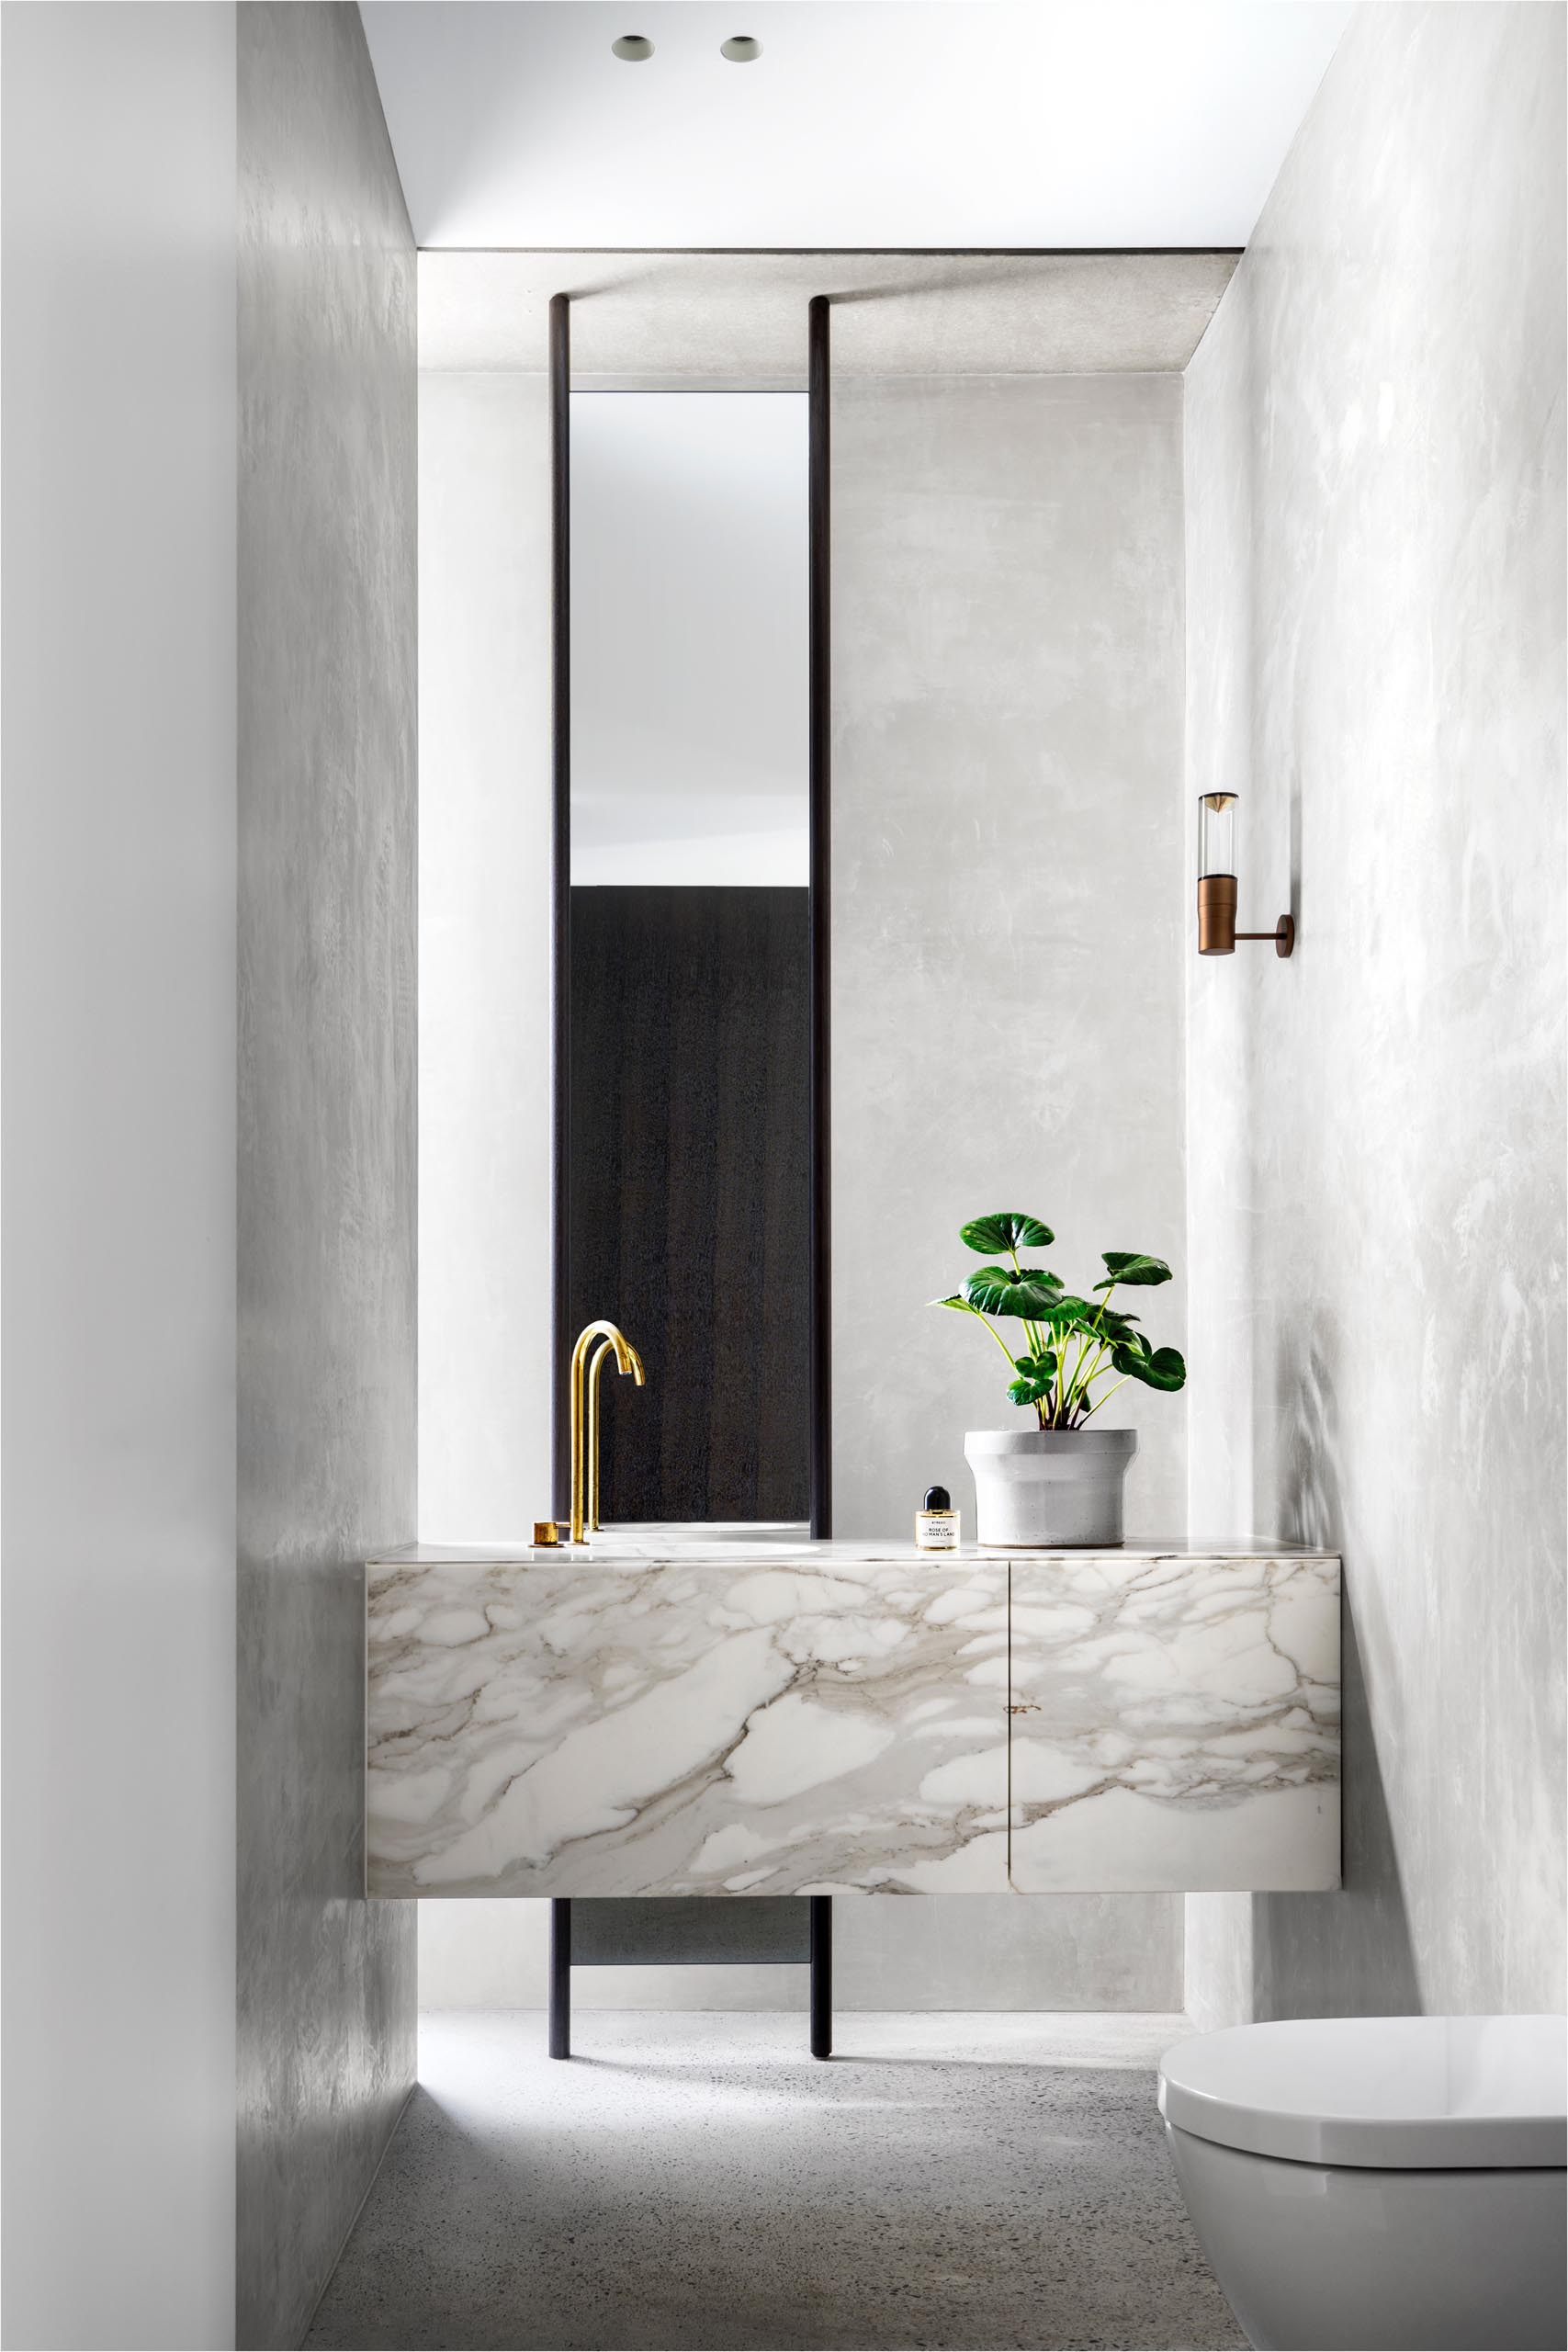 A modern bathroom with a marble vanity.